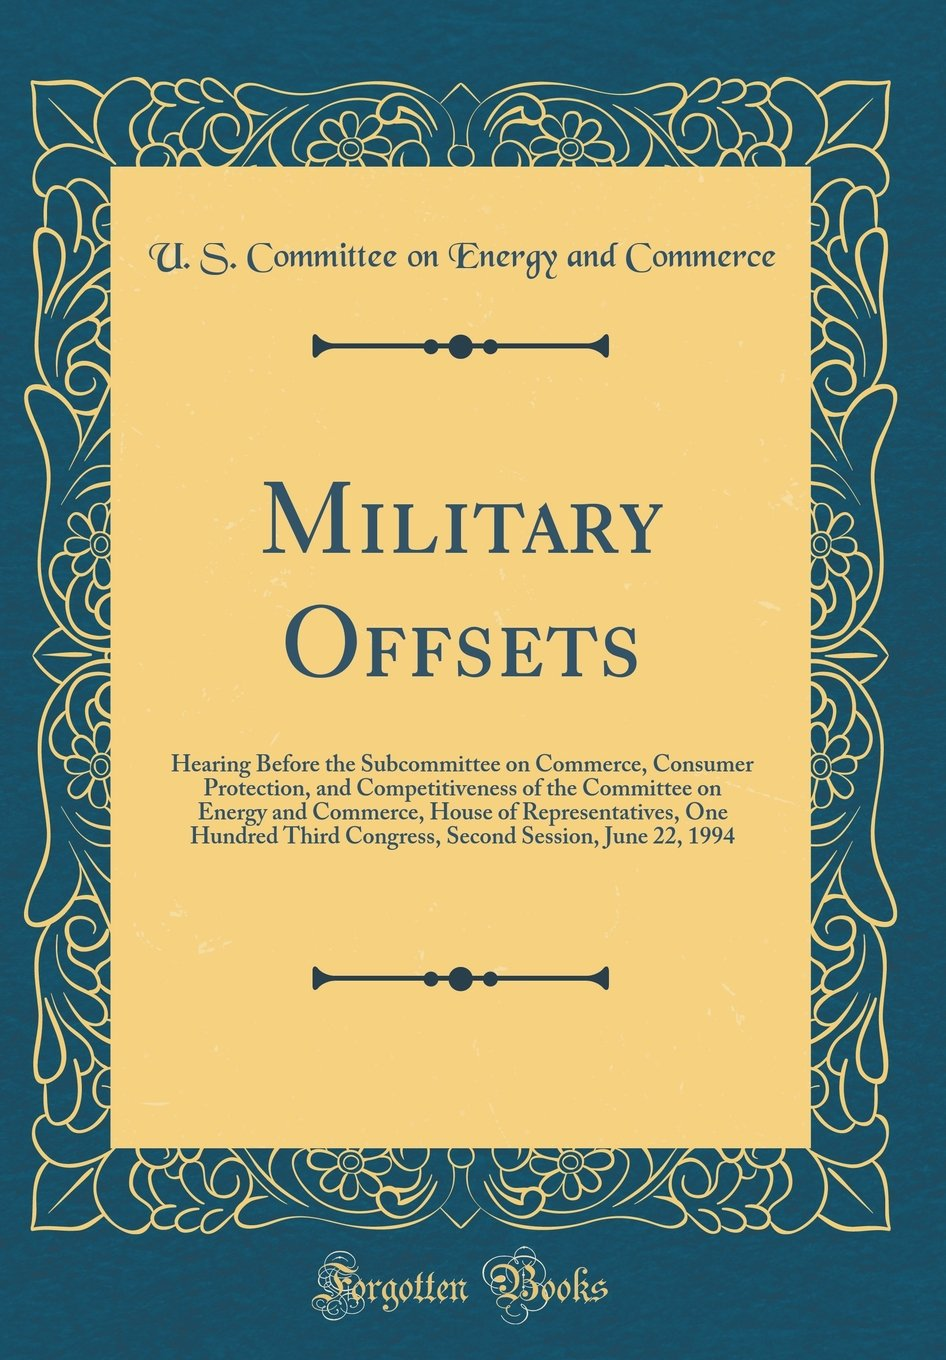 Download Military Offsets: Hearing Before the Subcommittee on Commerce, Consumer Protection, and Competitiveness of the Committee on Energy and Commerce, House ... Session, June 22, 1994 (Classic Reprint) pdf epub